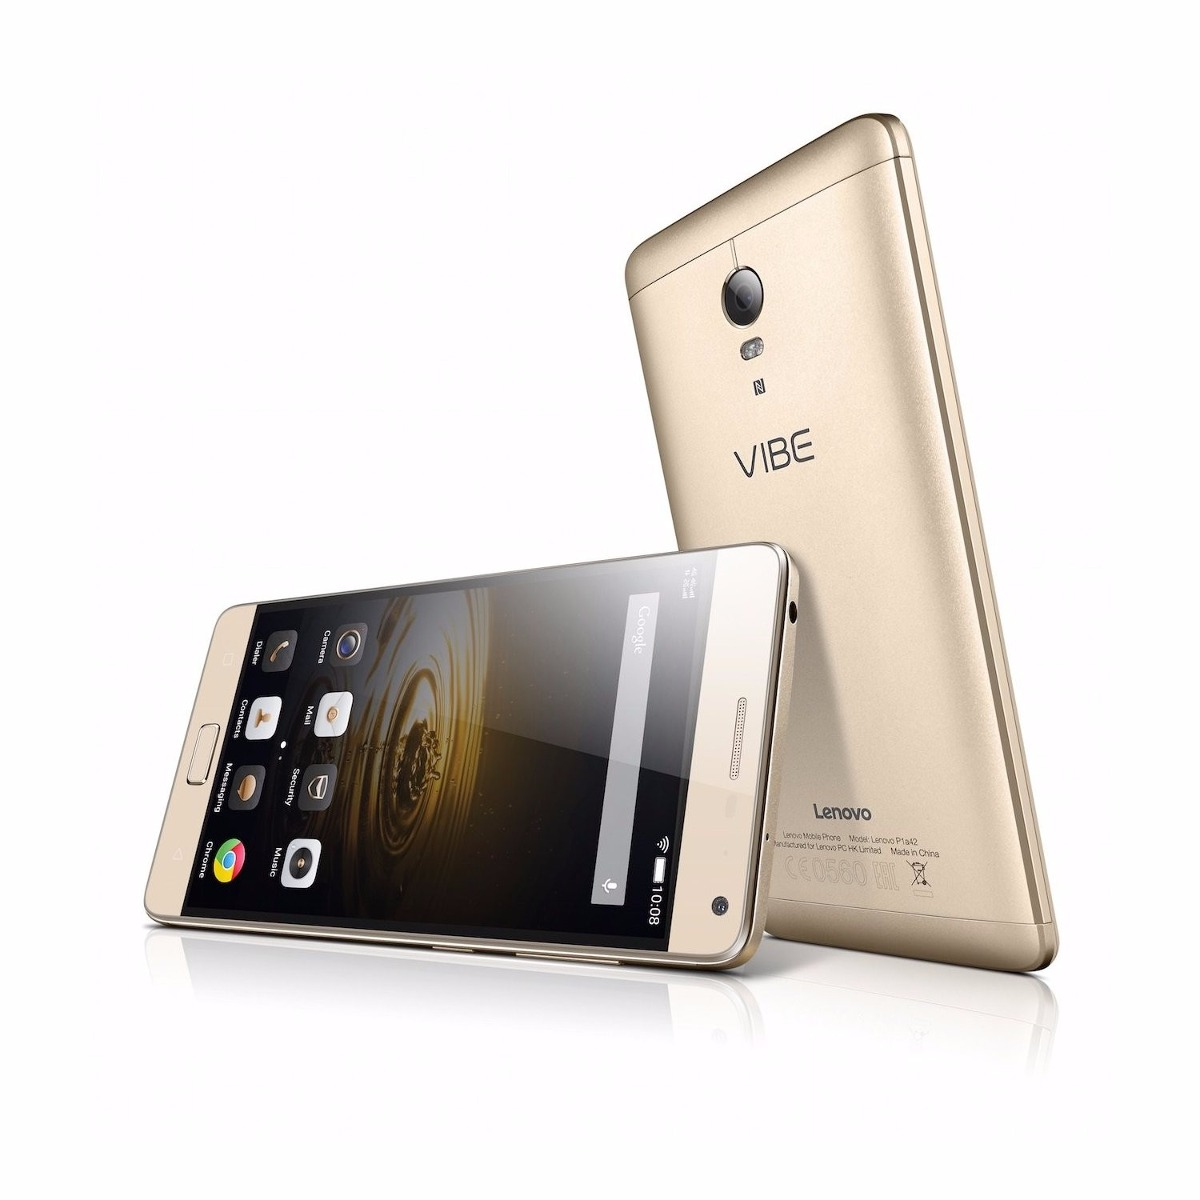 Super Celular Lenovo Vibe P1 Version Turbo Gran Promocion